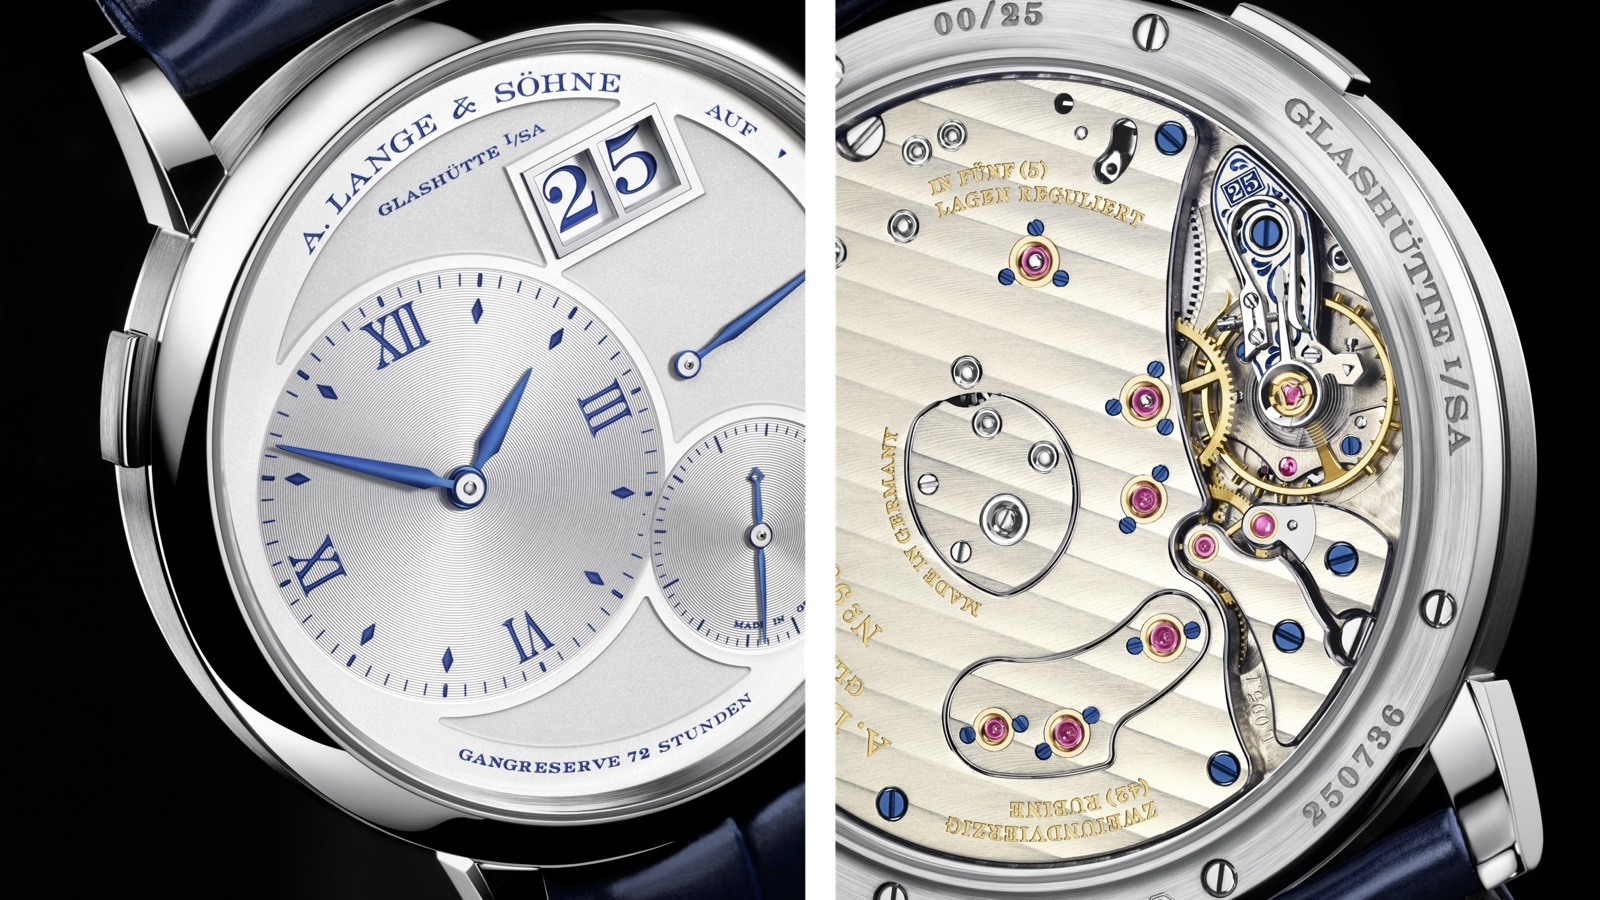 Grand Lange 1 25th Anniversary Detalles